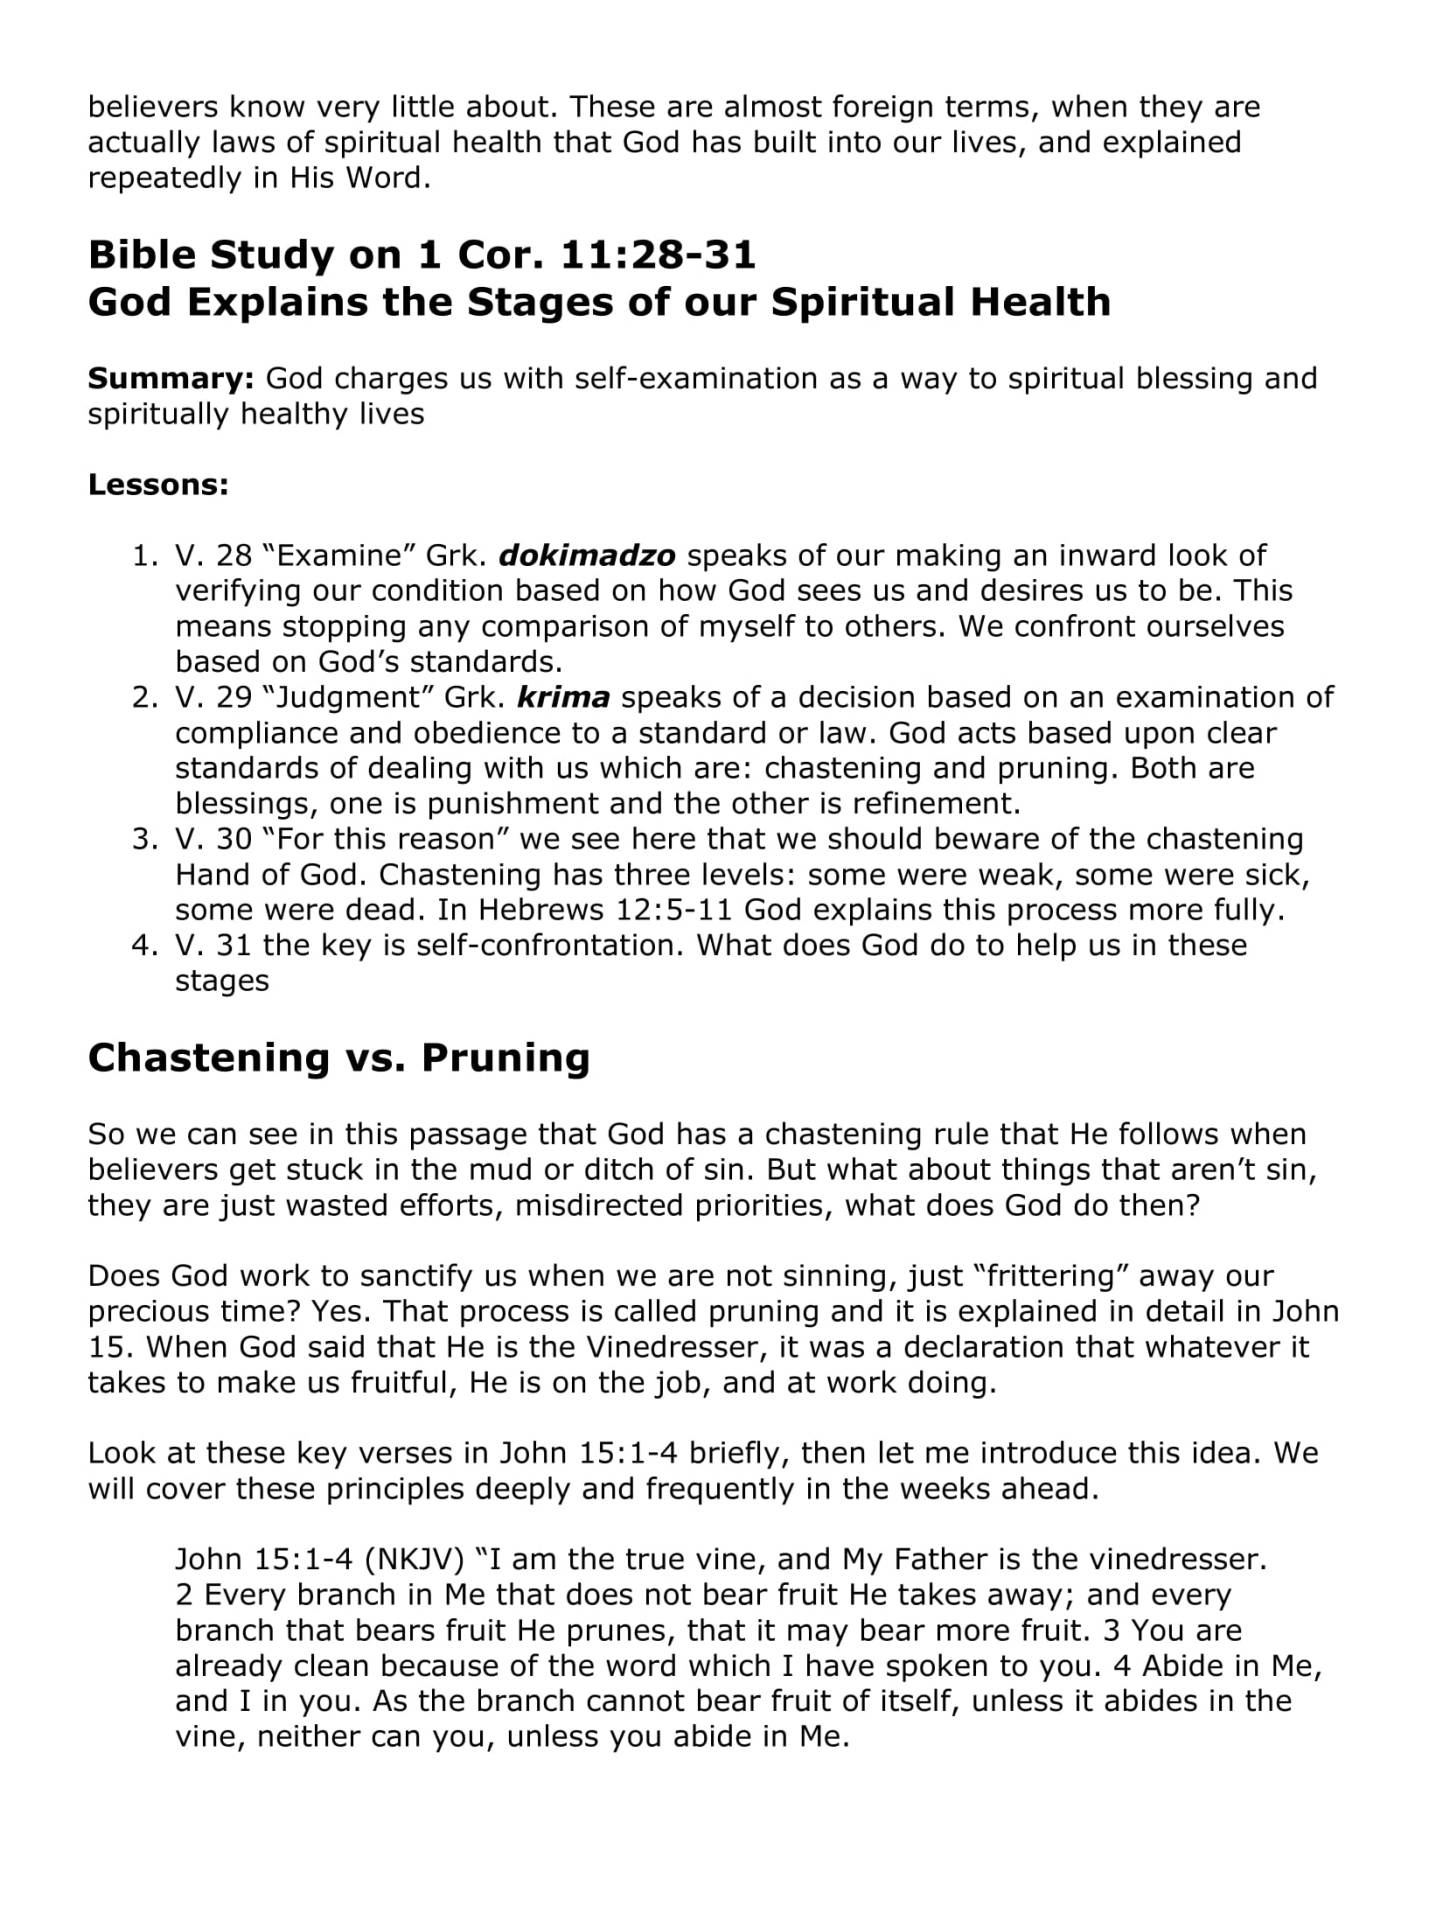 A Theology Of Spiritual Health - Chastening, Pruning, And